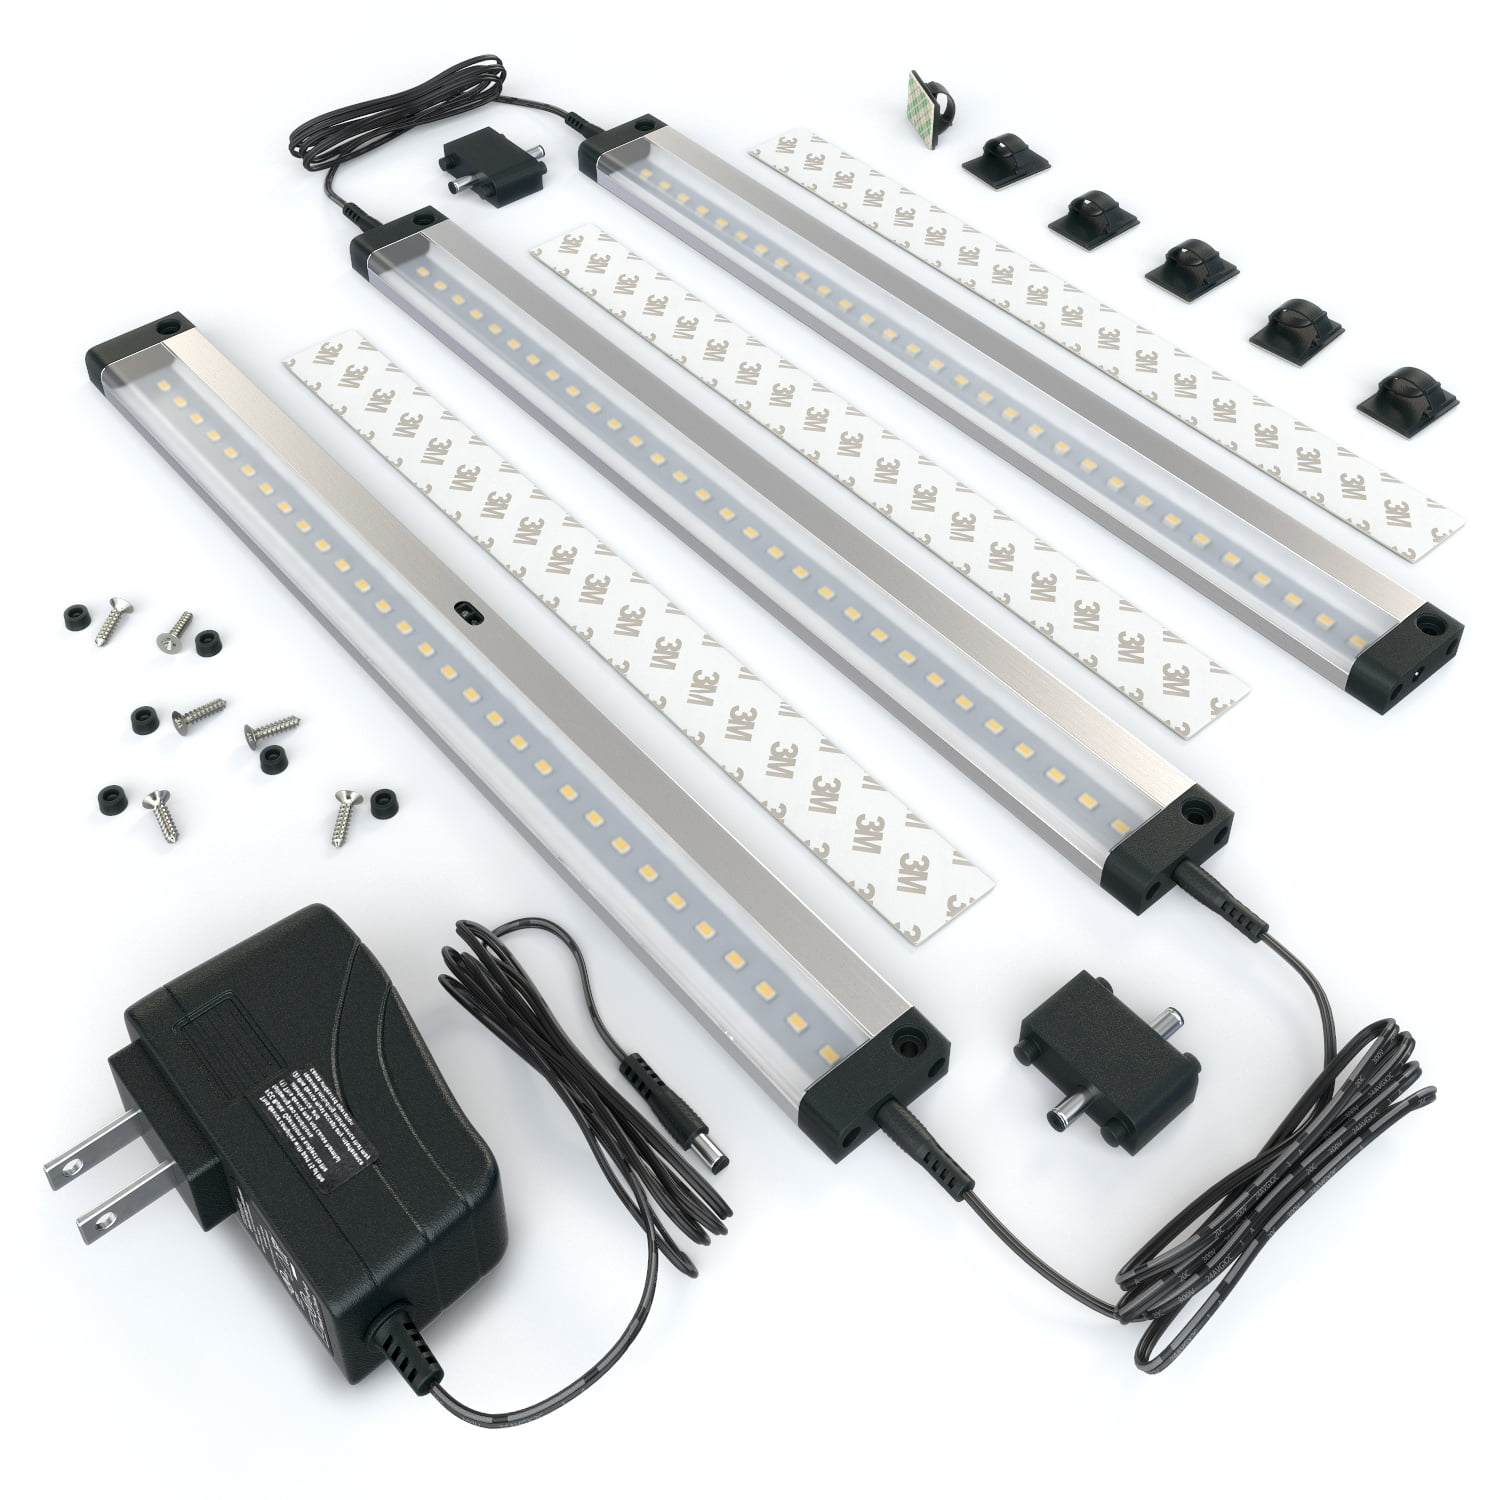 Led Dimmable Under Cabinet Lighting Kit